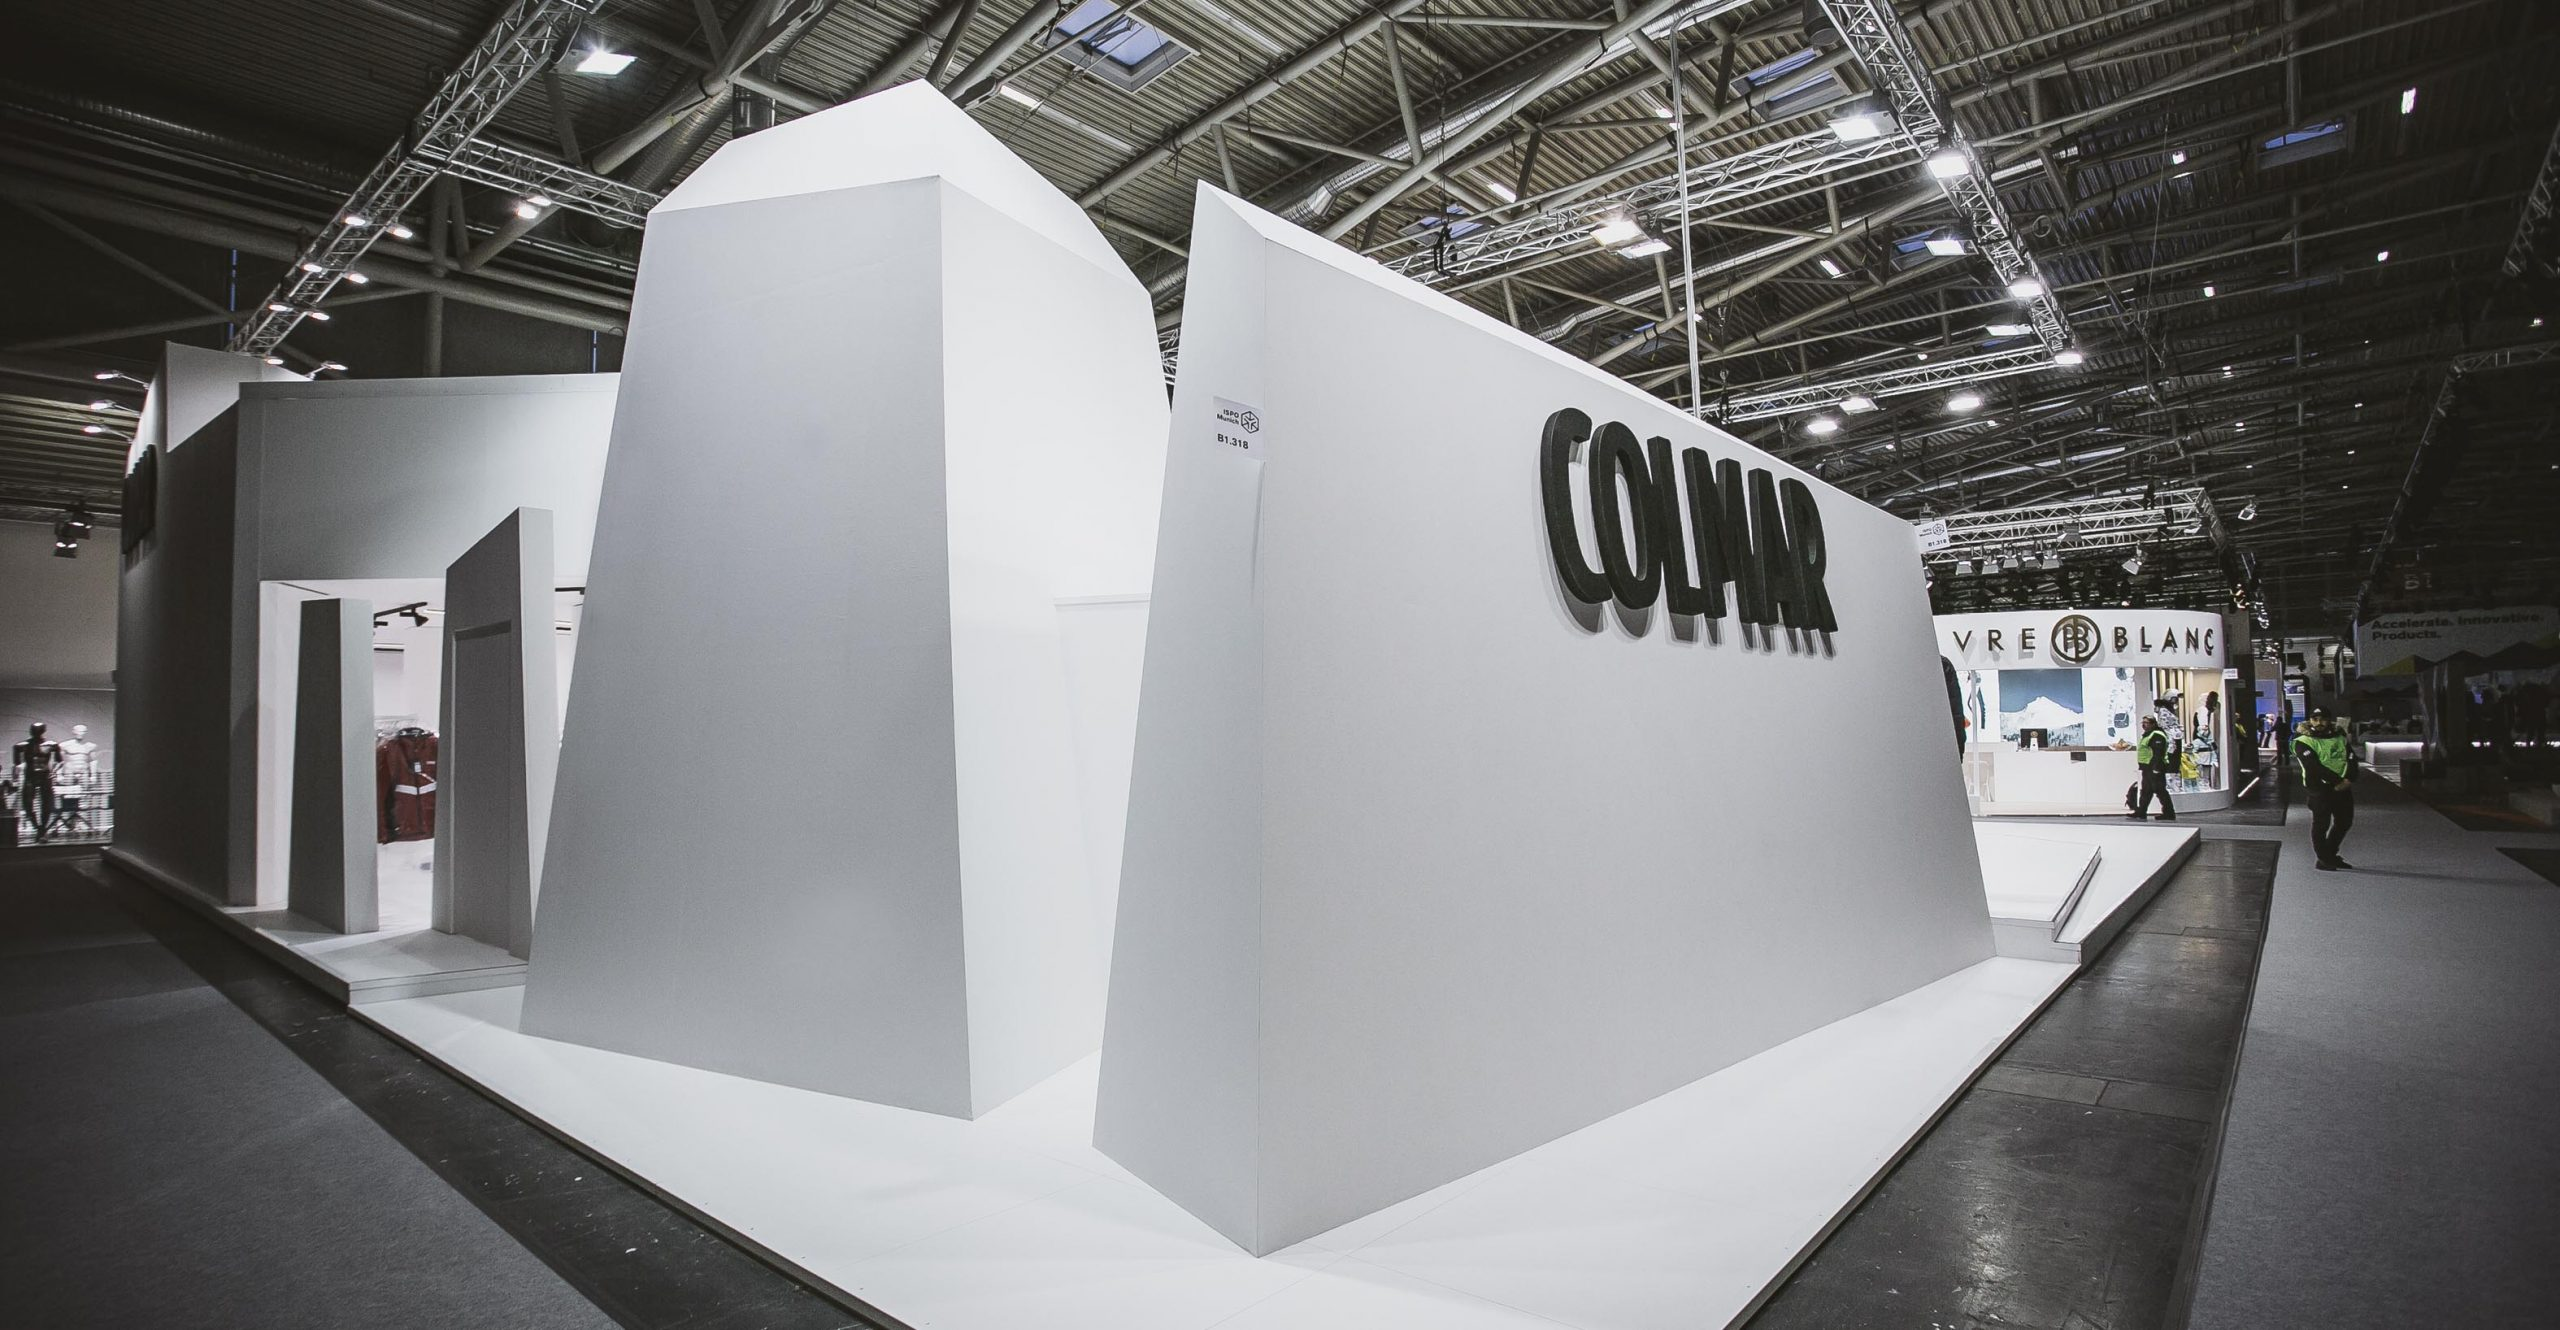 COLMAR Sport ISPO Munich stand exposition project 06